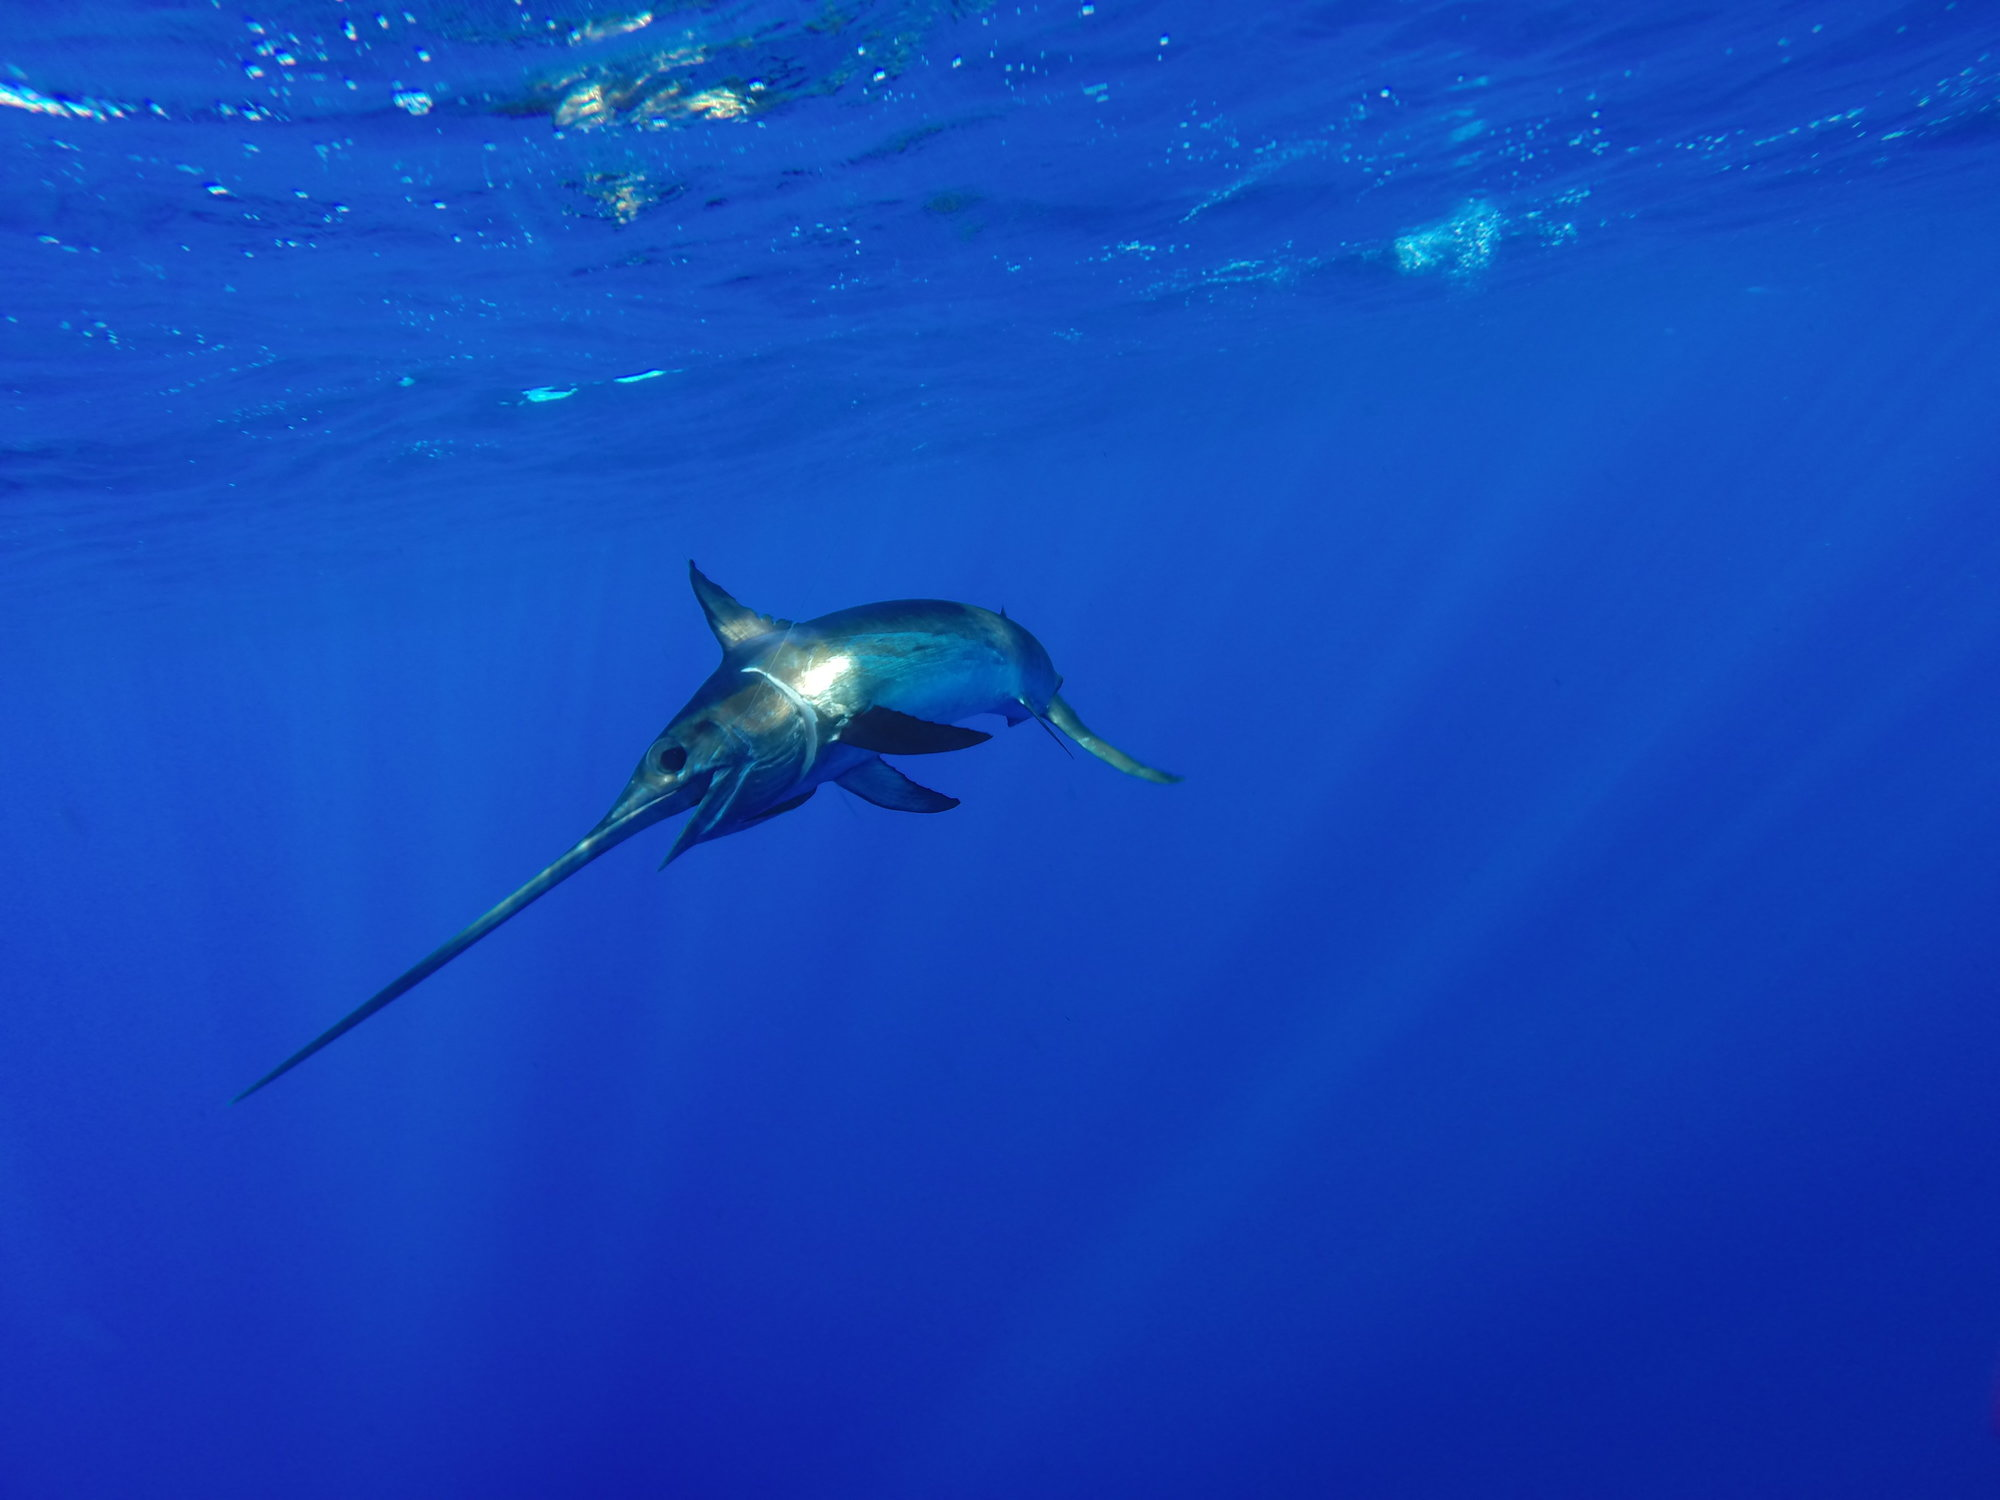 A magnificient Swordfish, one of the fastest fish in the ocean, swimming in shallow water